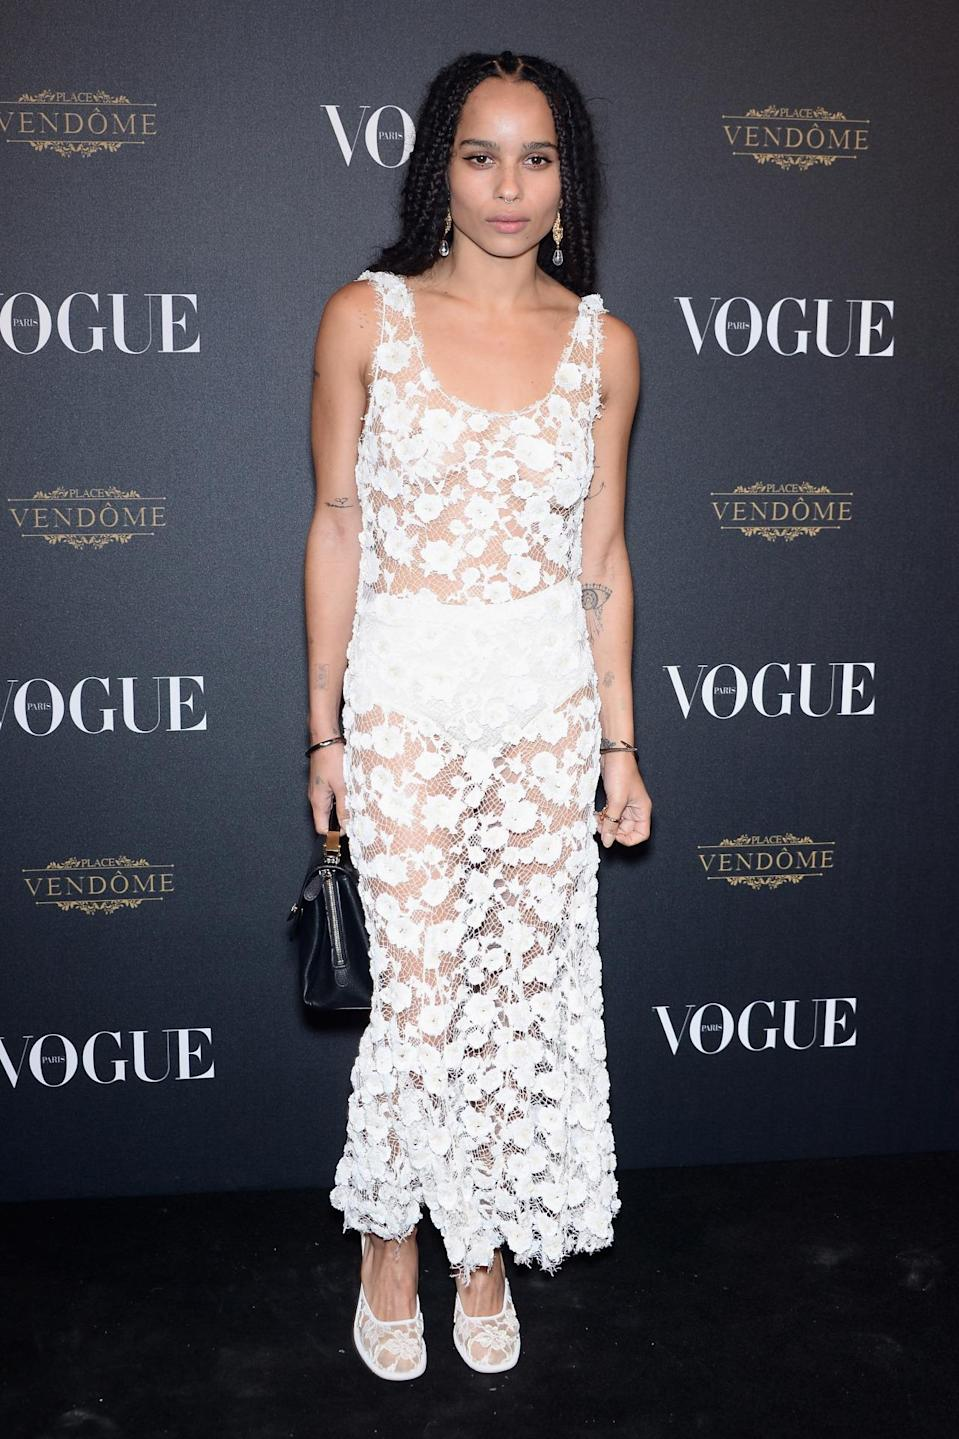 <p>To attend <i>Vogue Paris</i>'s 95th anniversary party, Kravitz—who's BFFs with former Balenciaga creative director Alexander Wang—wore a lacy, see-through dress and matching shoes from the designer's last collection for the house.<br></p>